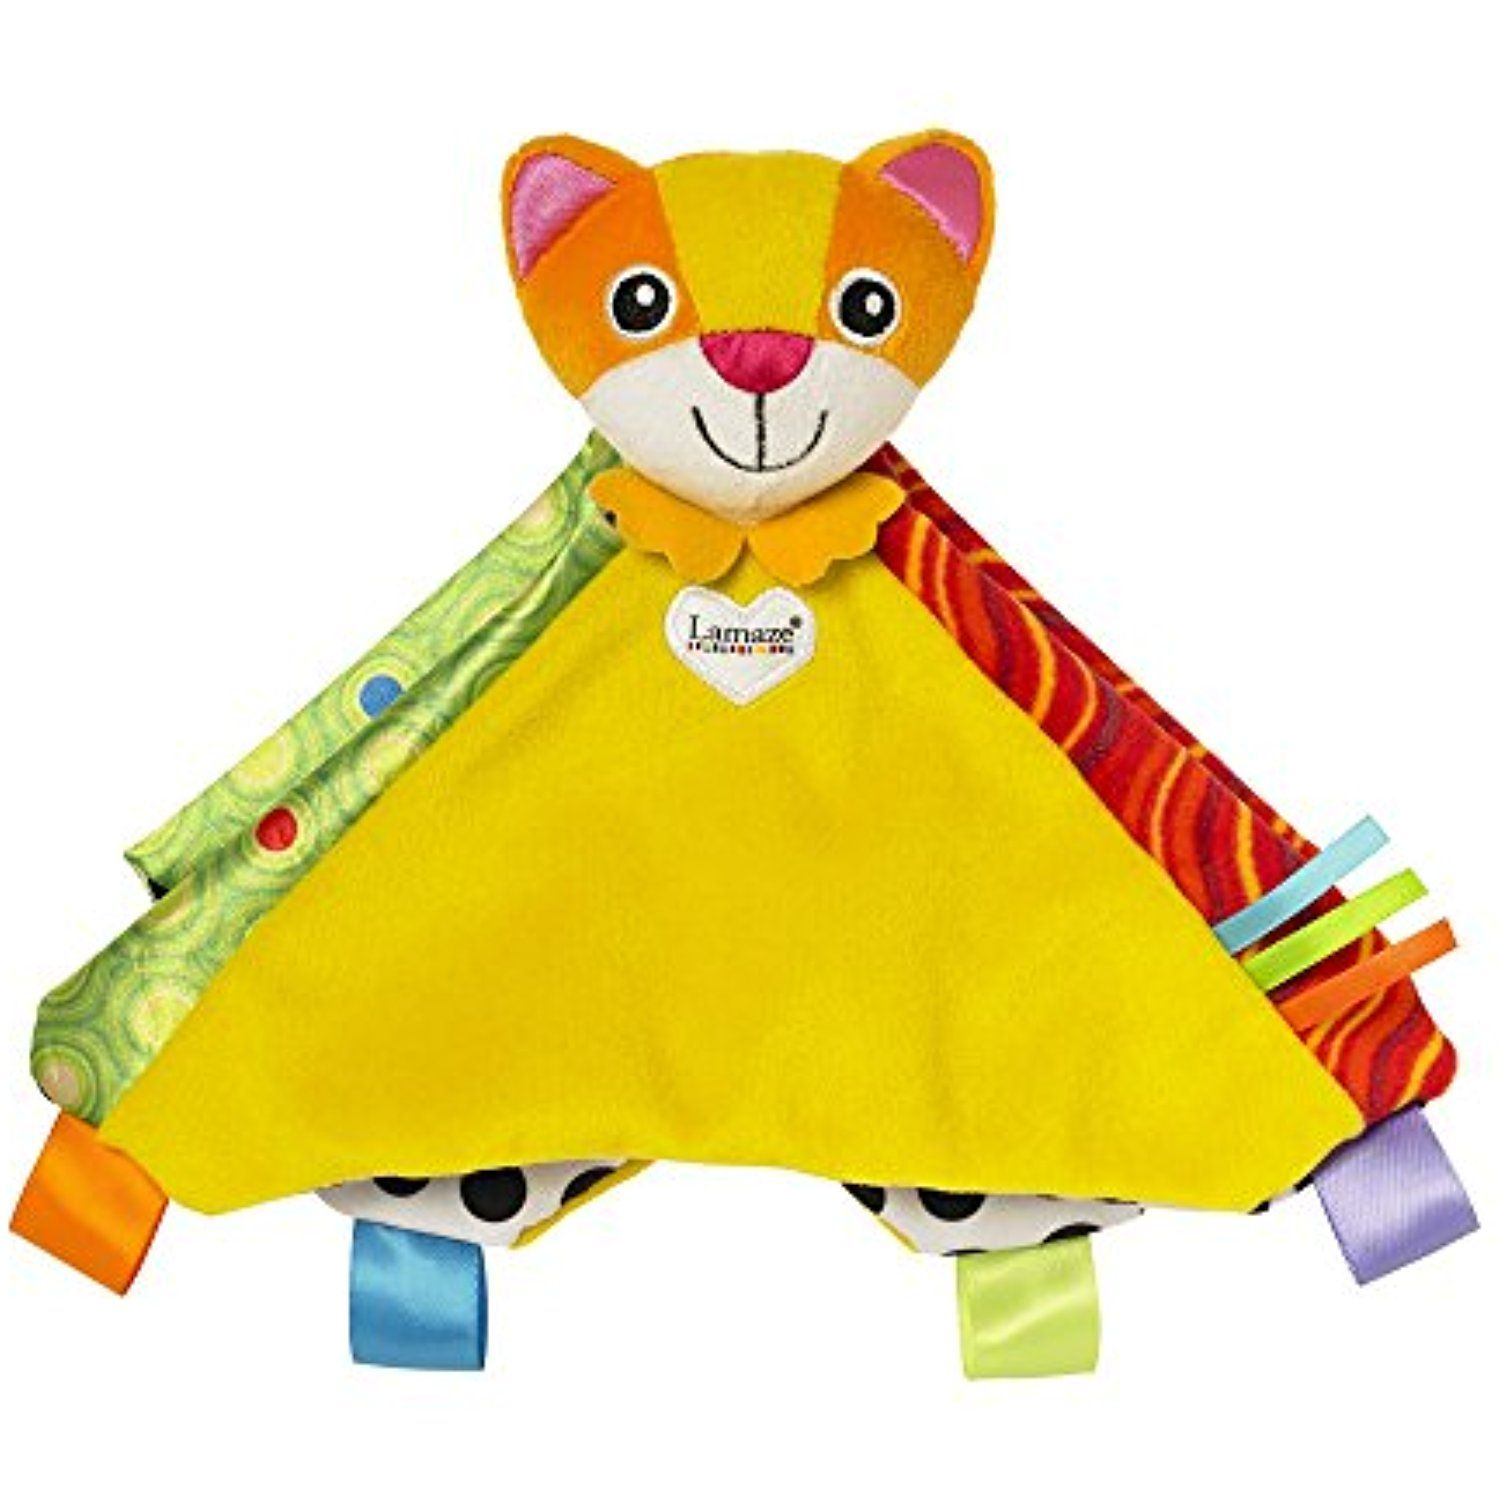 Lamaze Blankie Mittens The Kitten Discontinued By Manufacturer Want To Know More Click On Baby Toddler Toys Girl Nursery Bedding Travel Systems For Baby